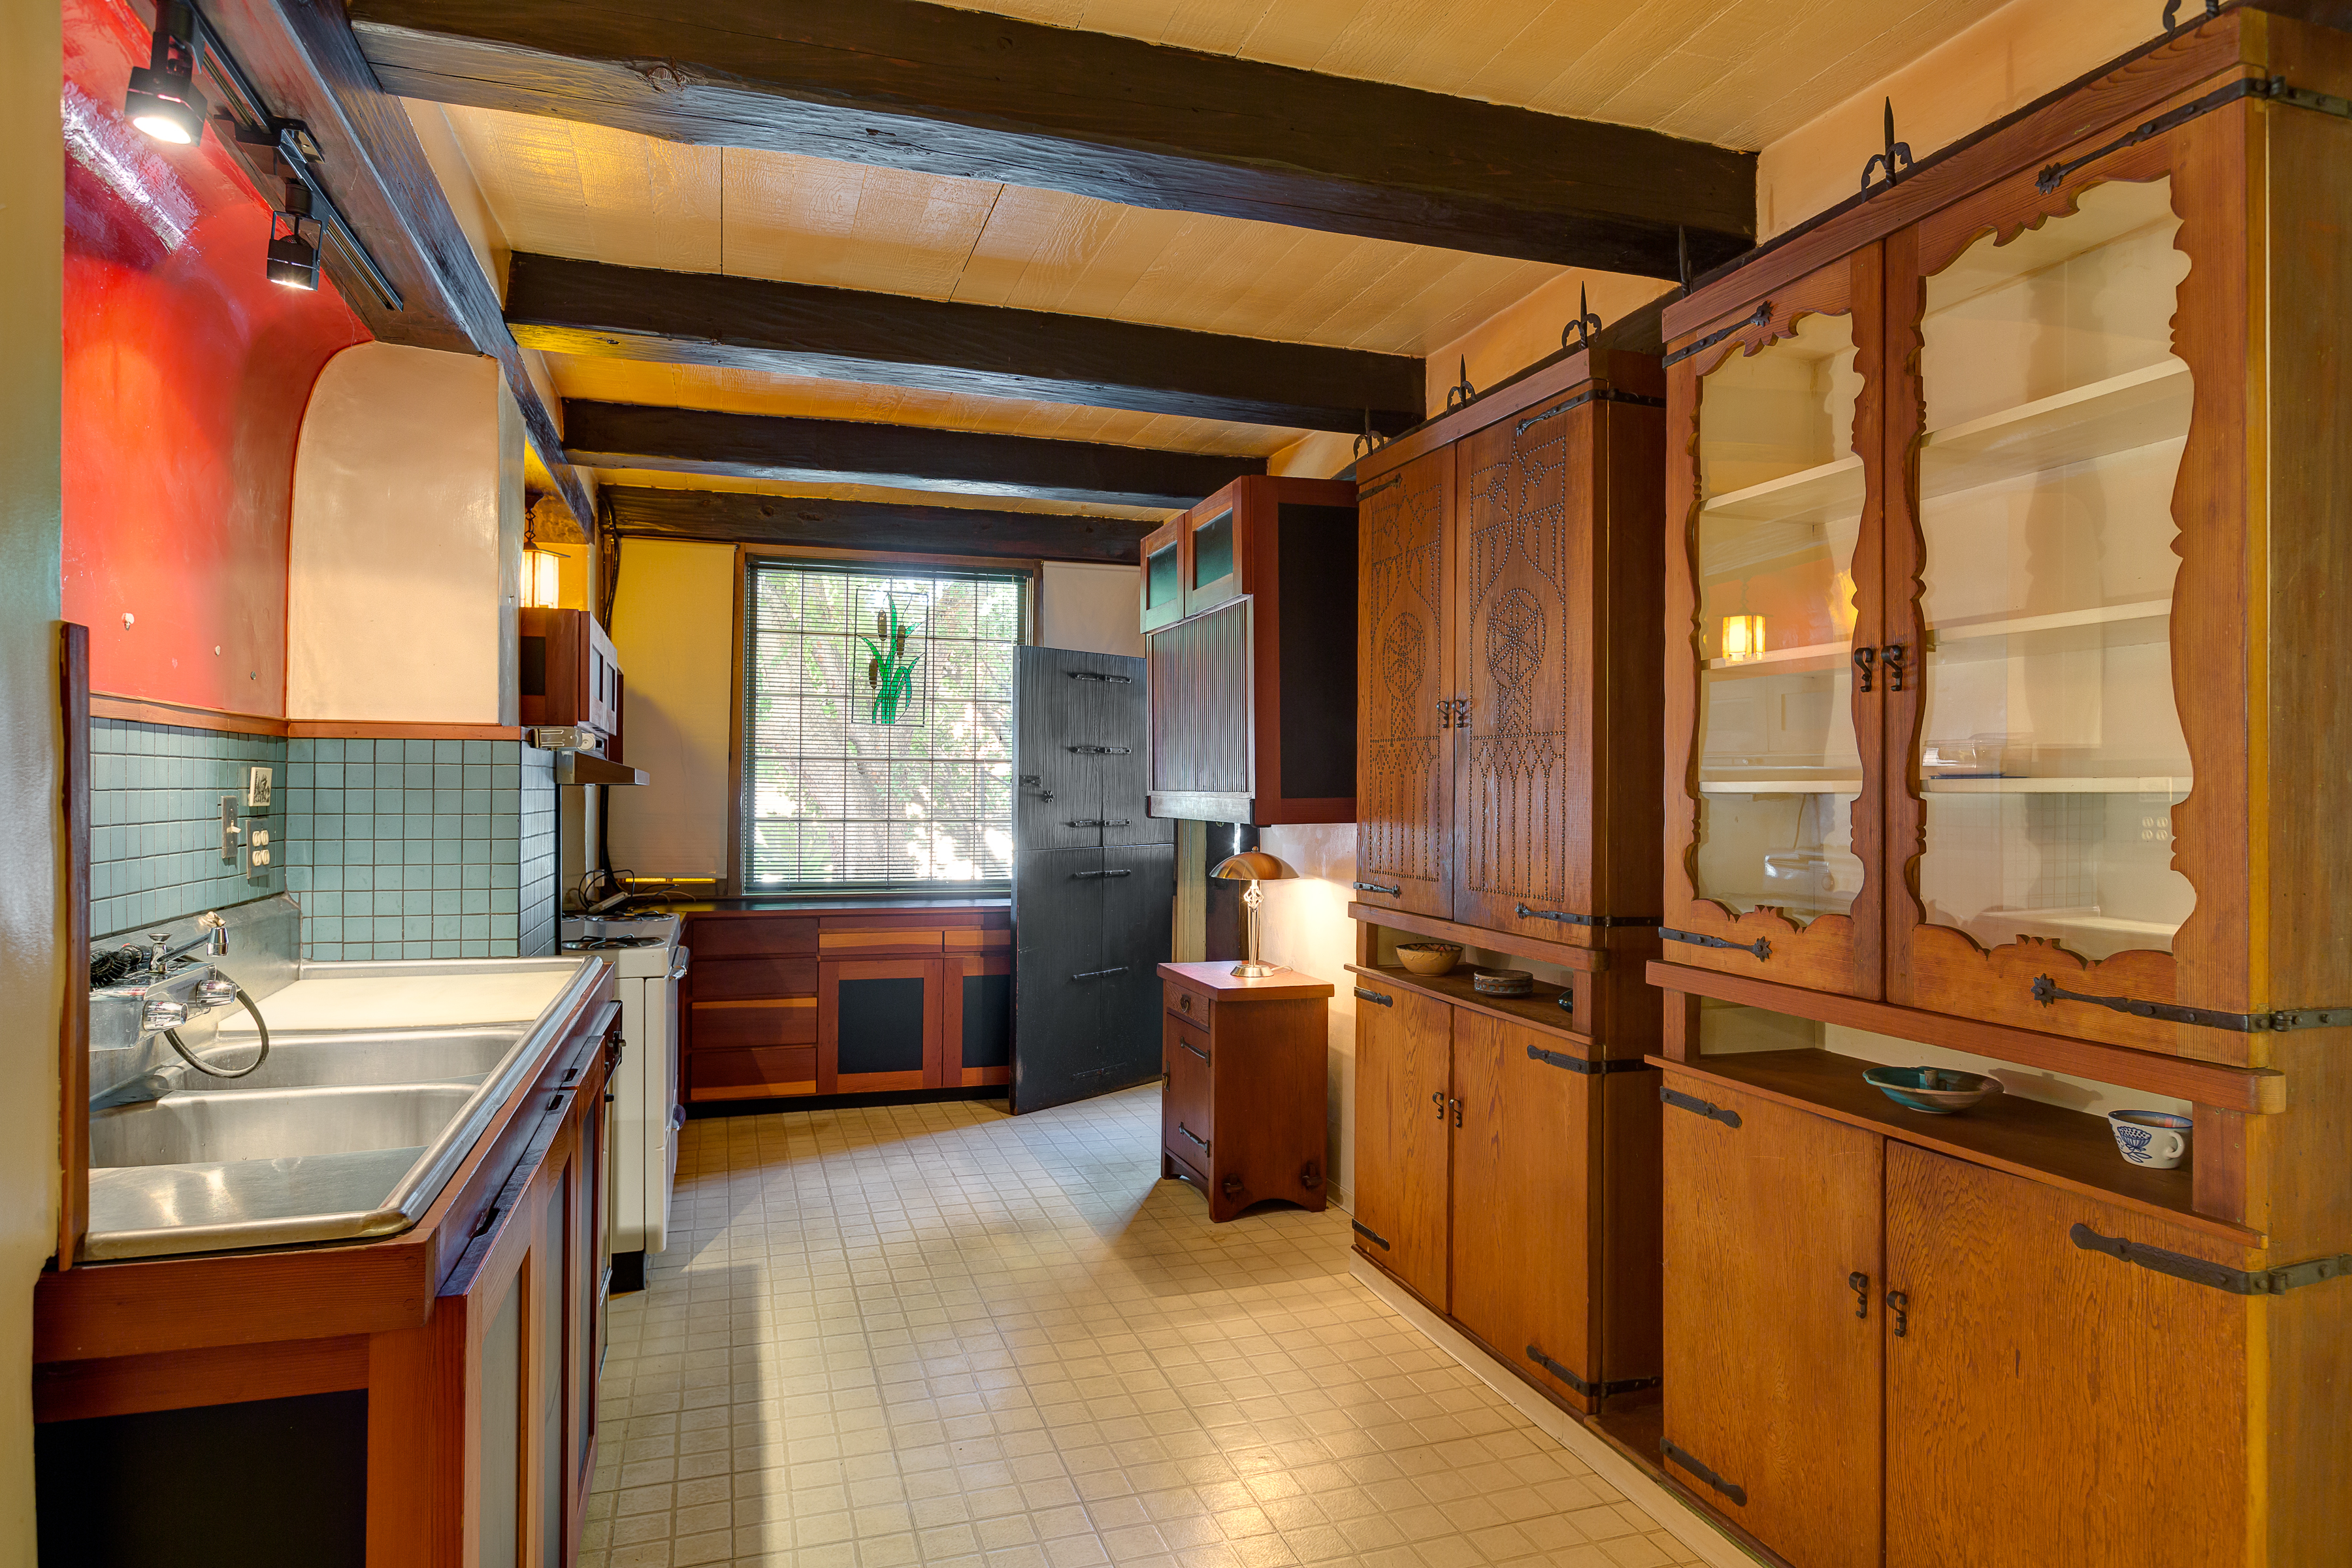 romantic spanish style compound in pasadena asks 1 2m curbed la